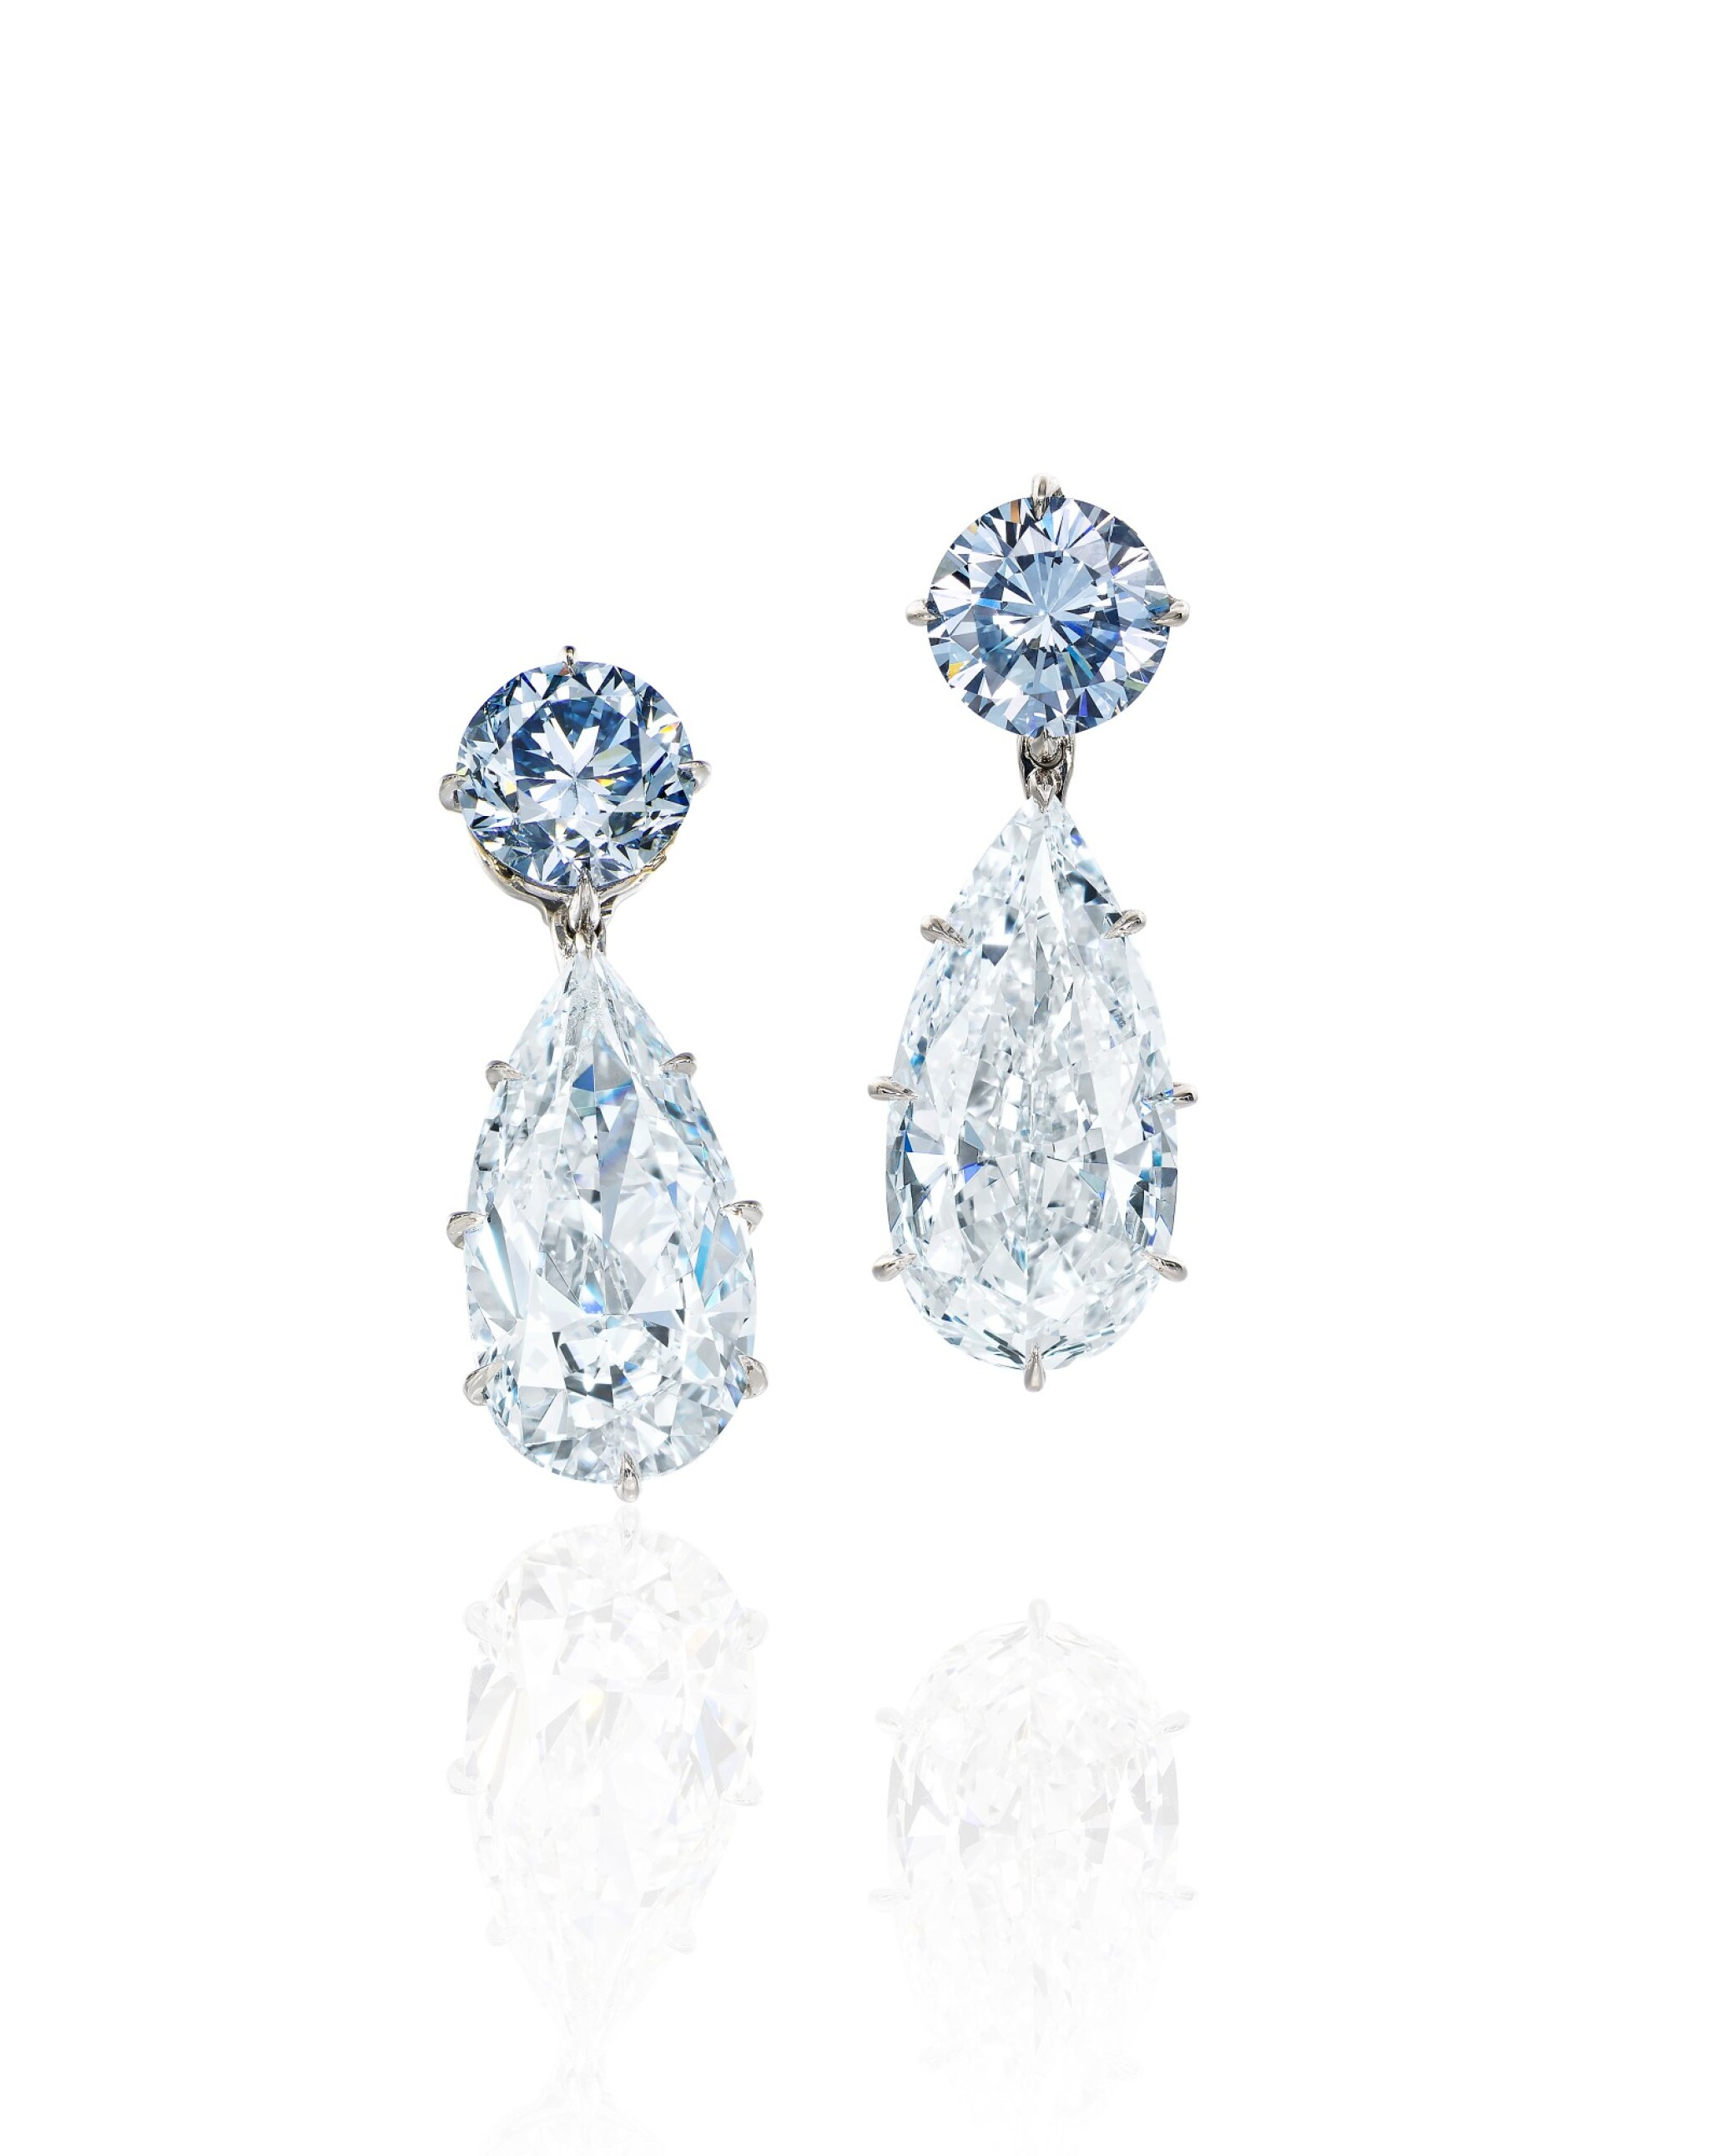 View full screen - View 1 of Lot 1753. AN EXQUISITE AND UNIQUE PAIR OF FANCY INTENSE BLUE DIAMOND AND DIAMOND PENDENT EARRINGS | 超凡尚品 1.95及1.63卡拉 濃彩藍色鑽石 配 5.95及 5.24卡拉 梨形 D色 內部無瑕(IF)Type IIa 鑽石 耳墜一對.